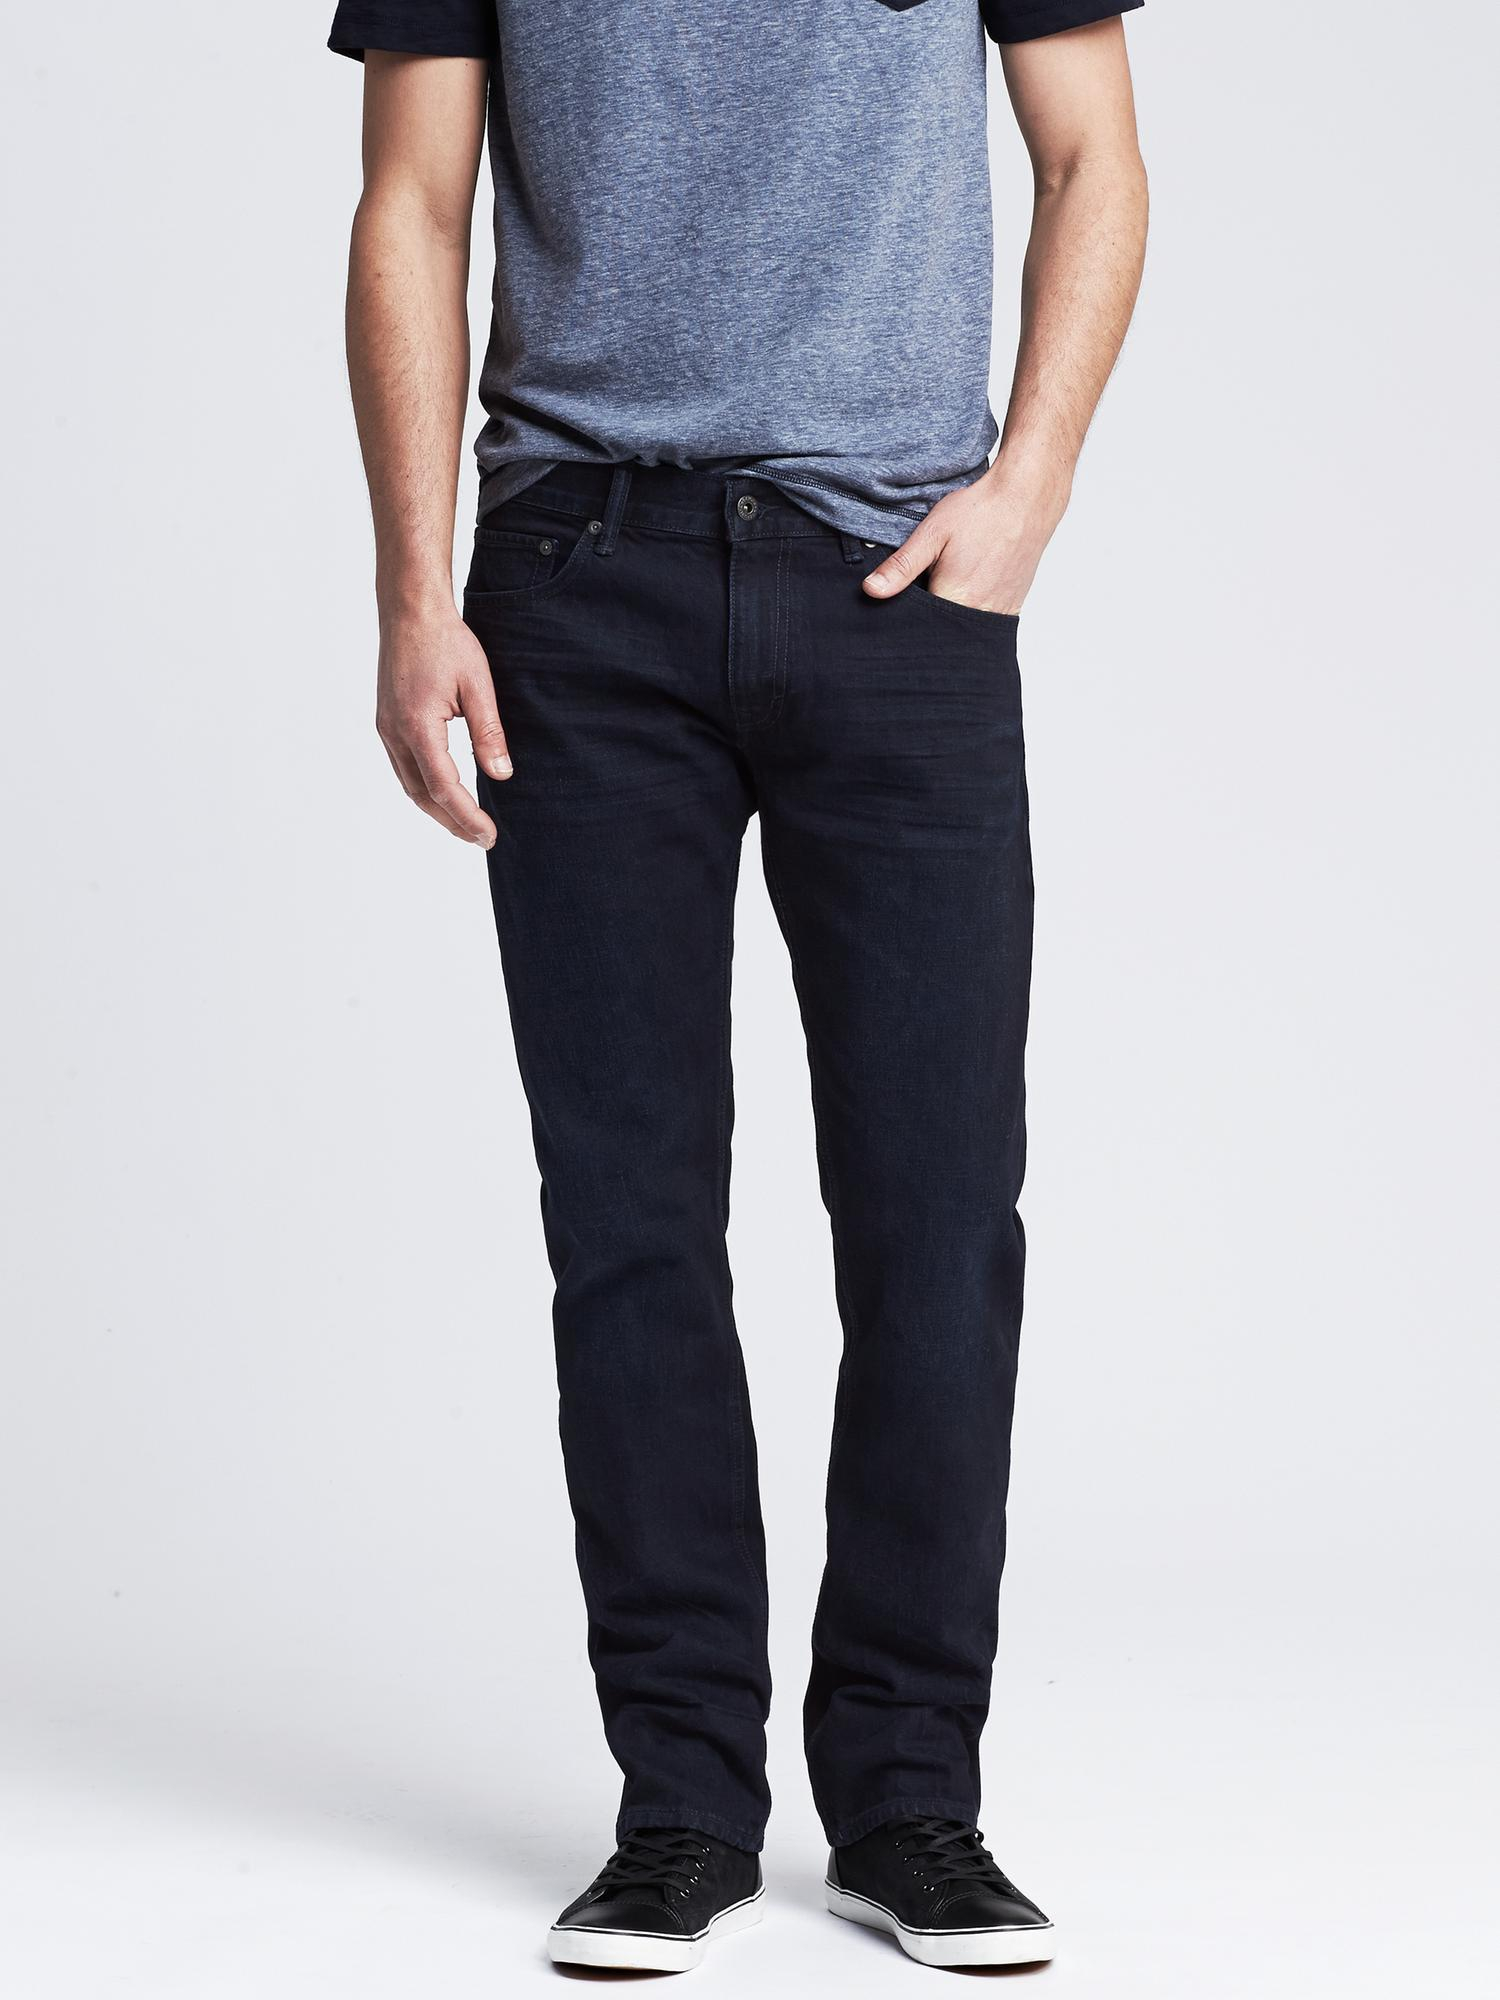 1ce2f278 Banana Republic Factory Store Banana Republic offers versatile,  contemporary classics, designed for today with style that endures.